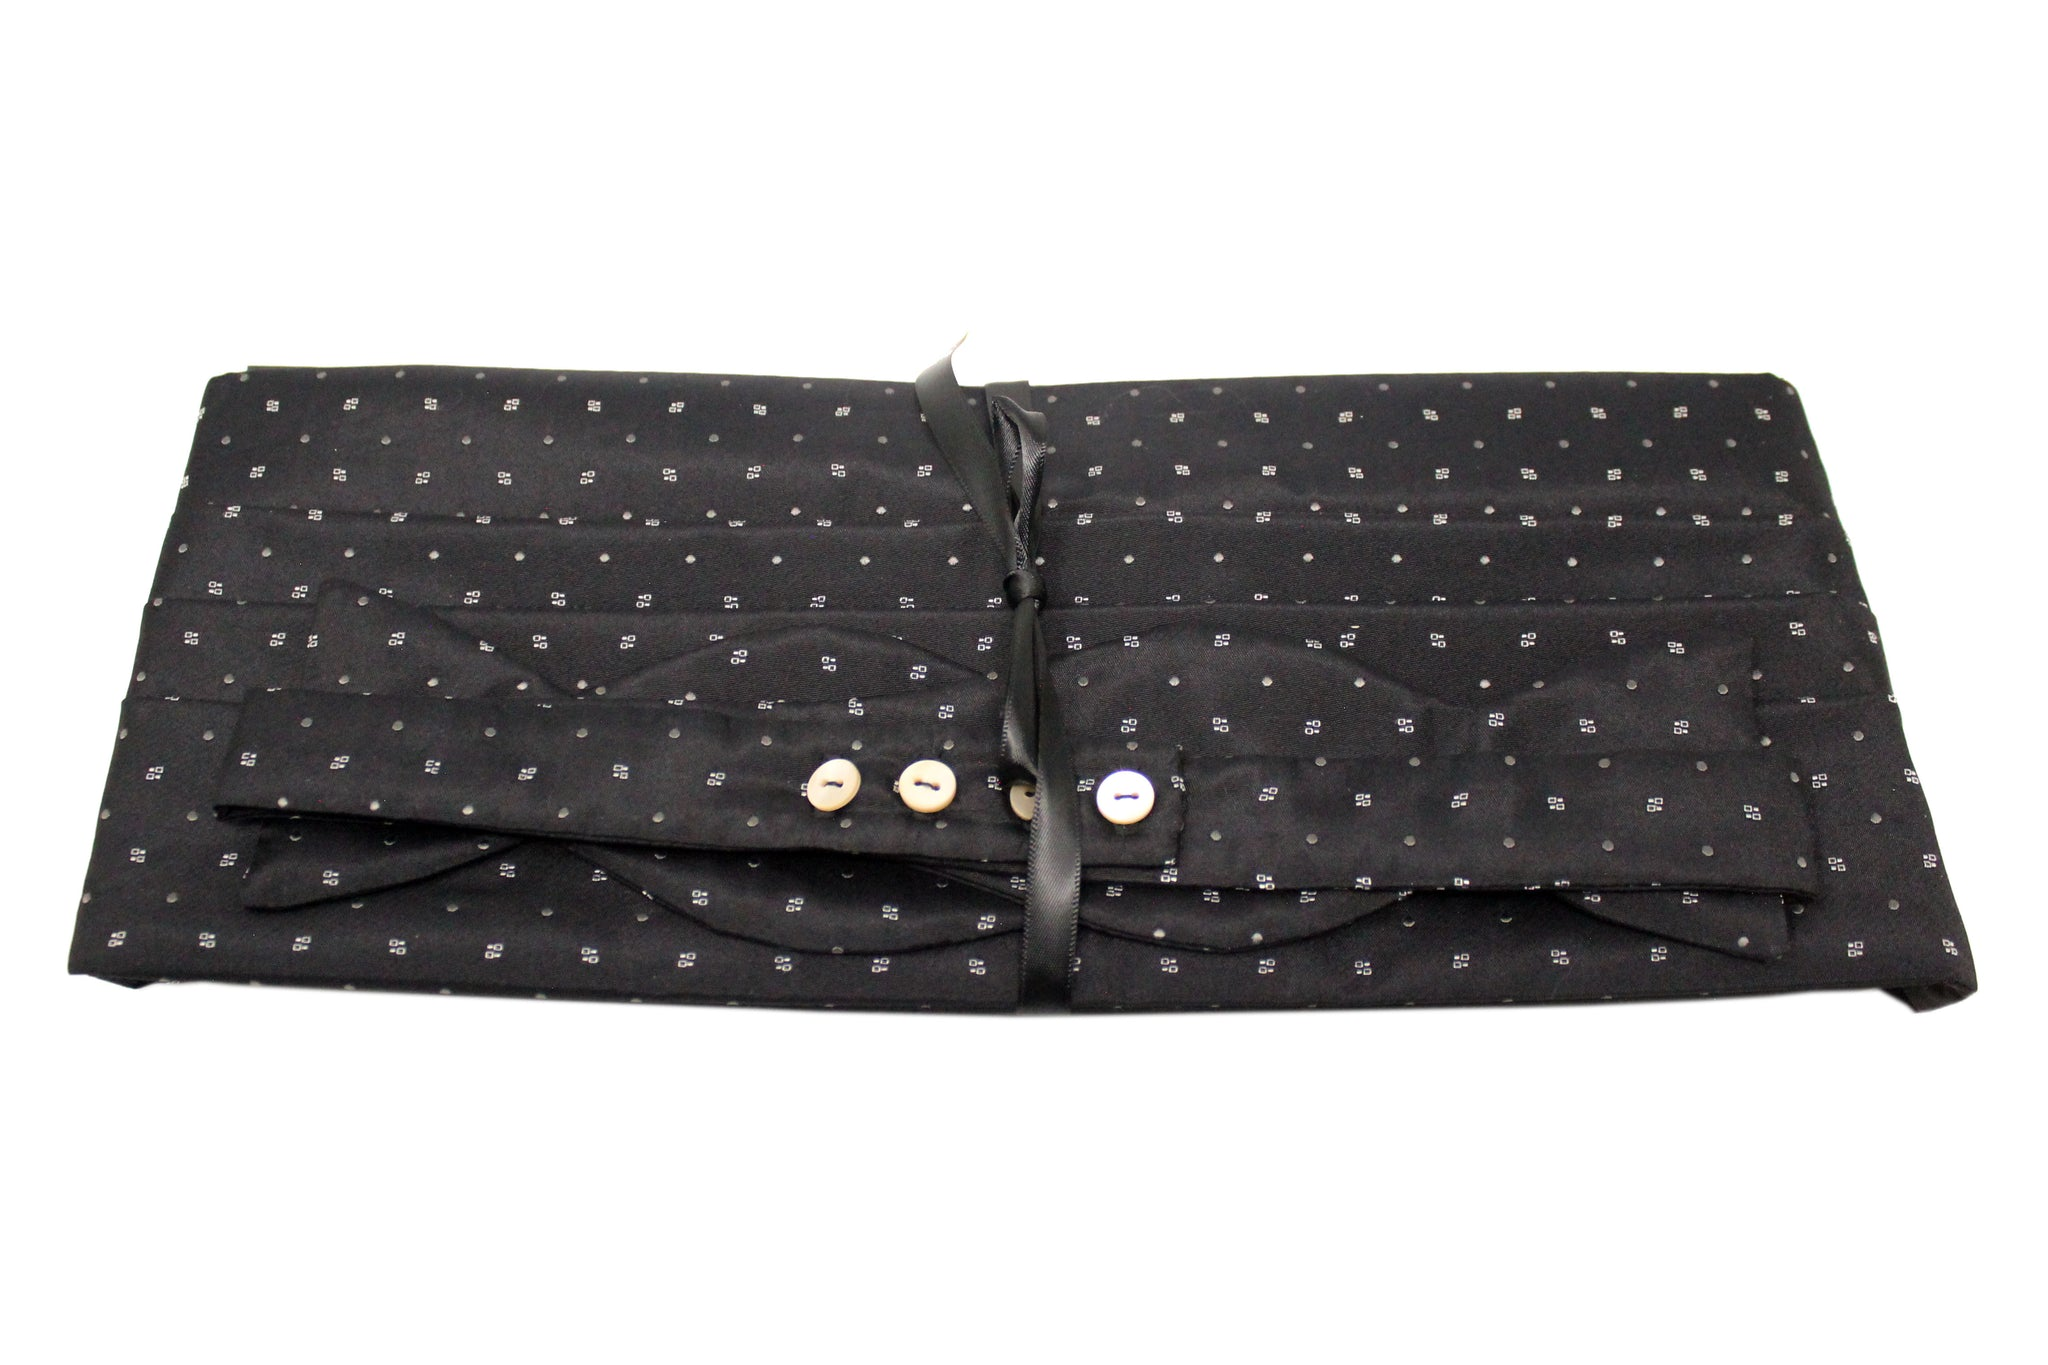 Black Satin with Geometric Shapes and Dots